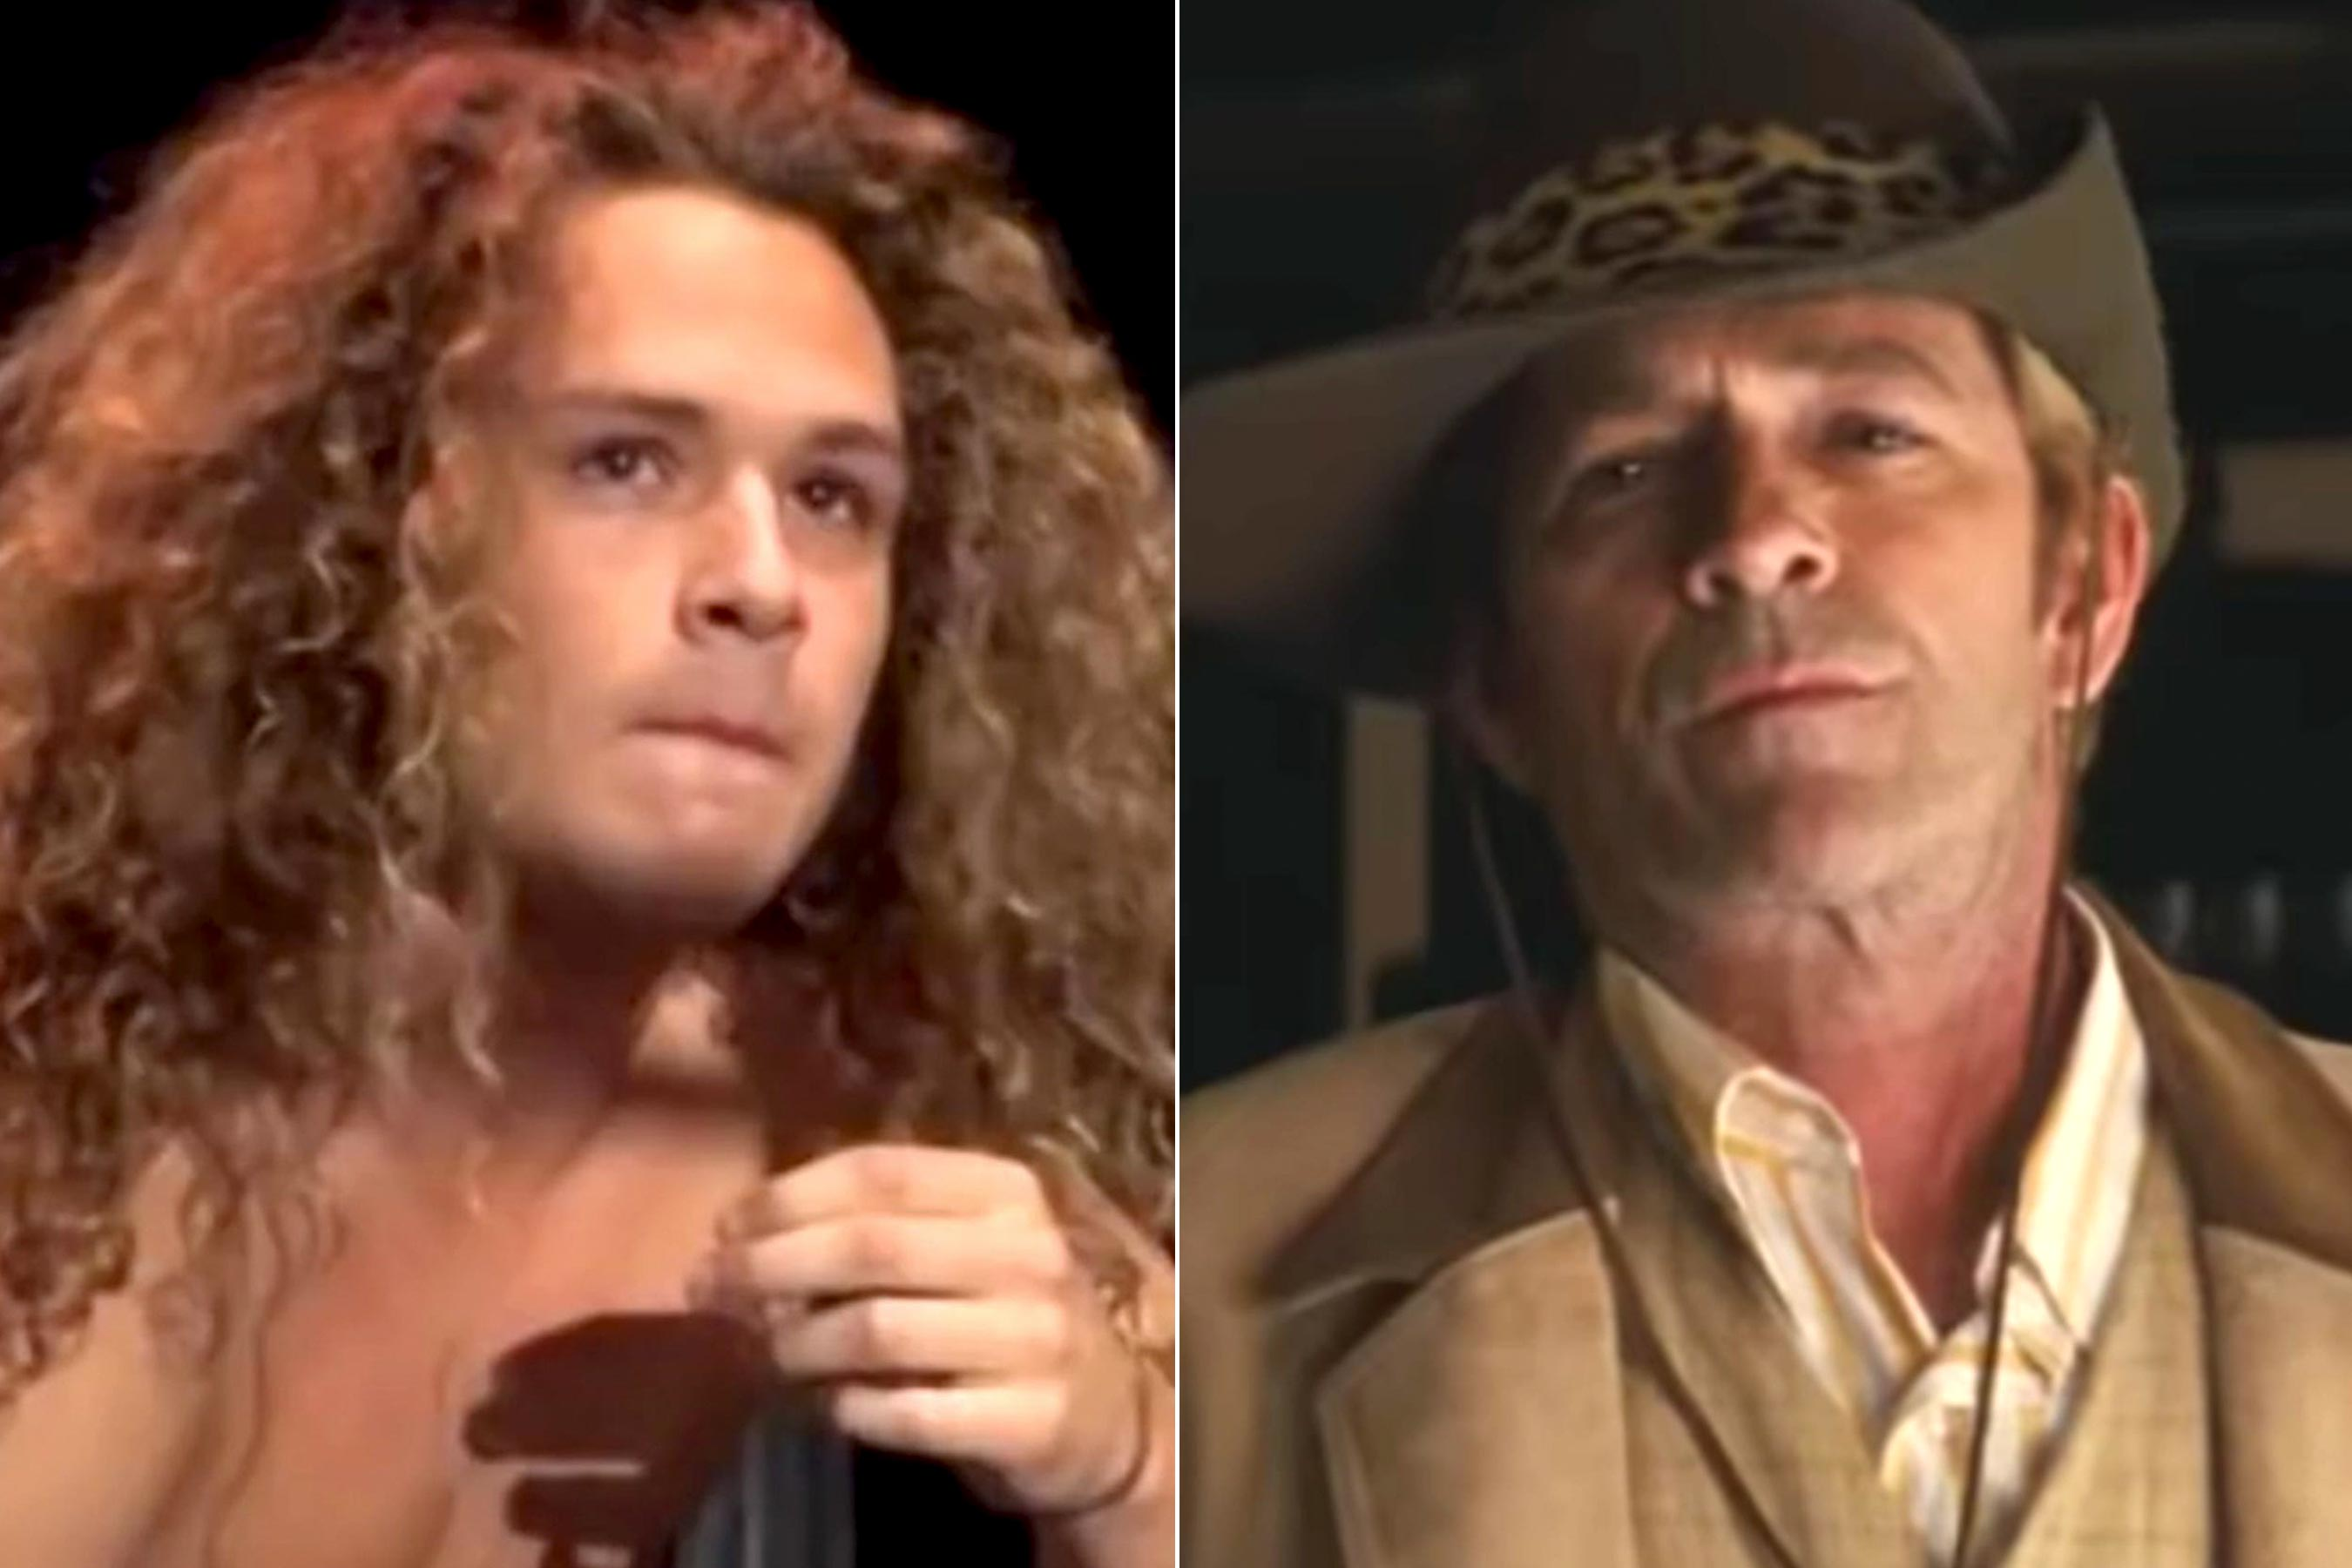 Luke Perry's son posts loving tribute atop billboard for dad's final role in 'Once Upon a Time in Hollywood'